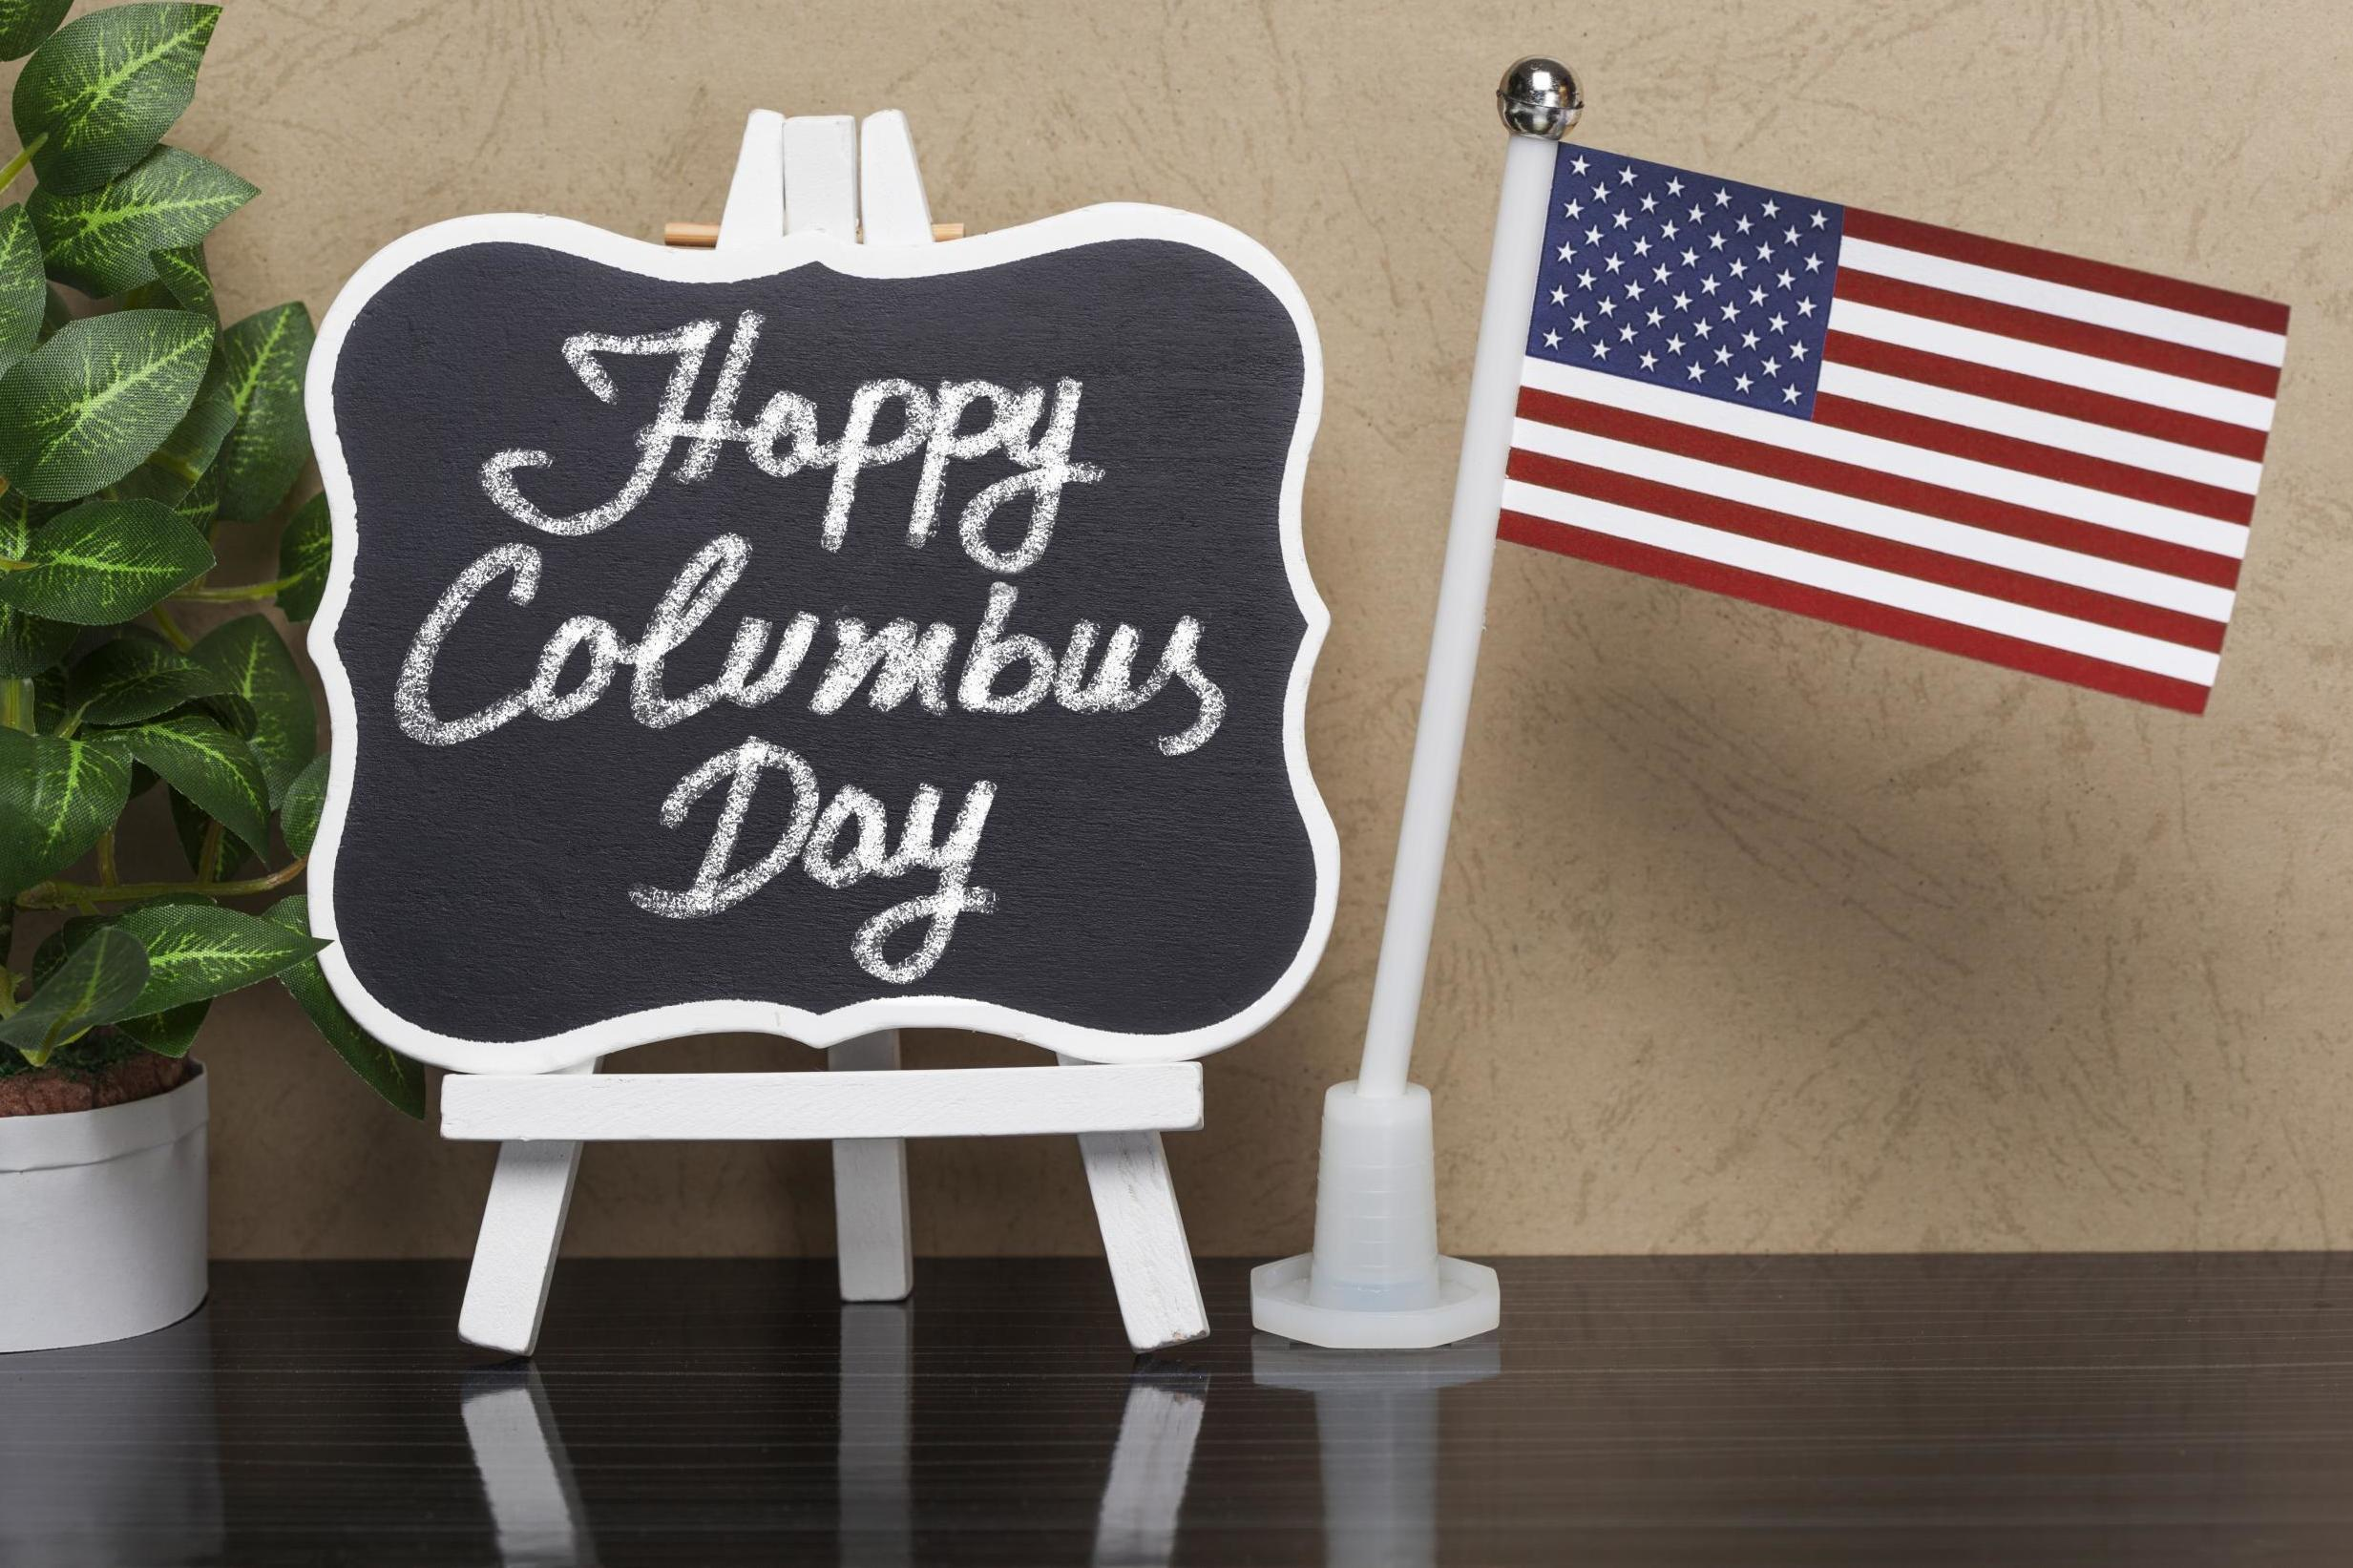 Columbus Day: Do Americans get the day off from work?